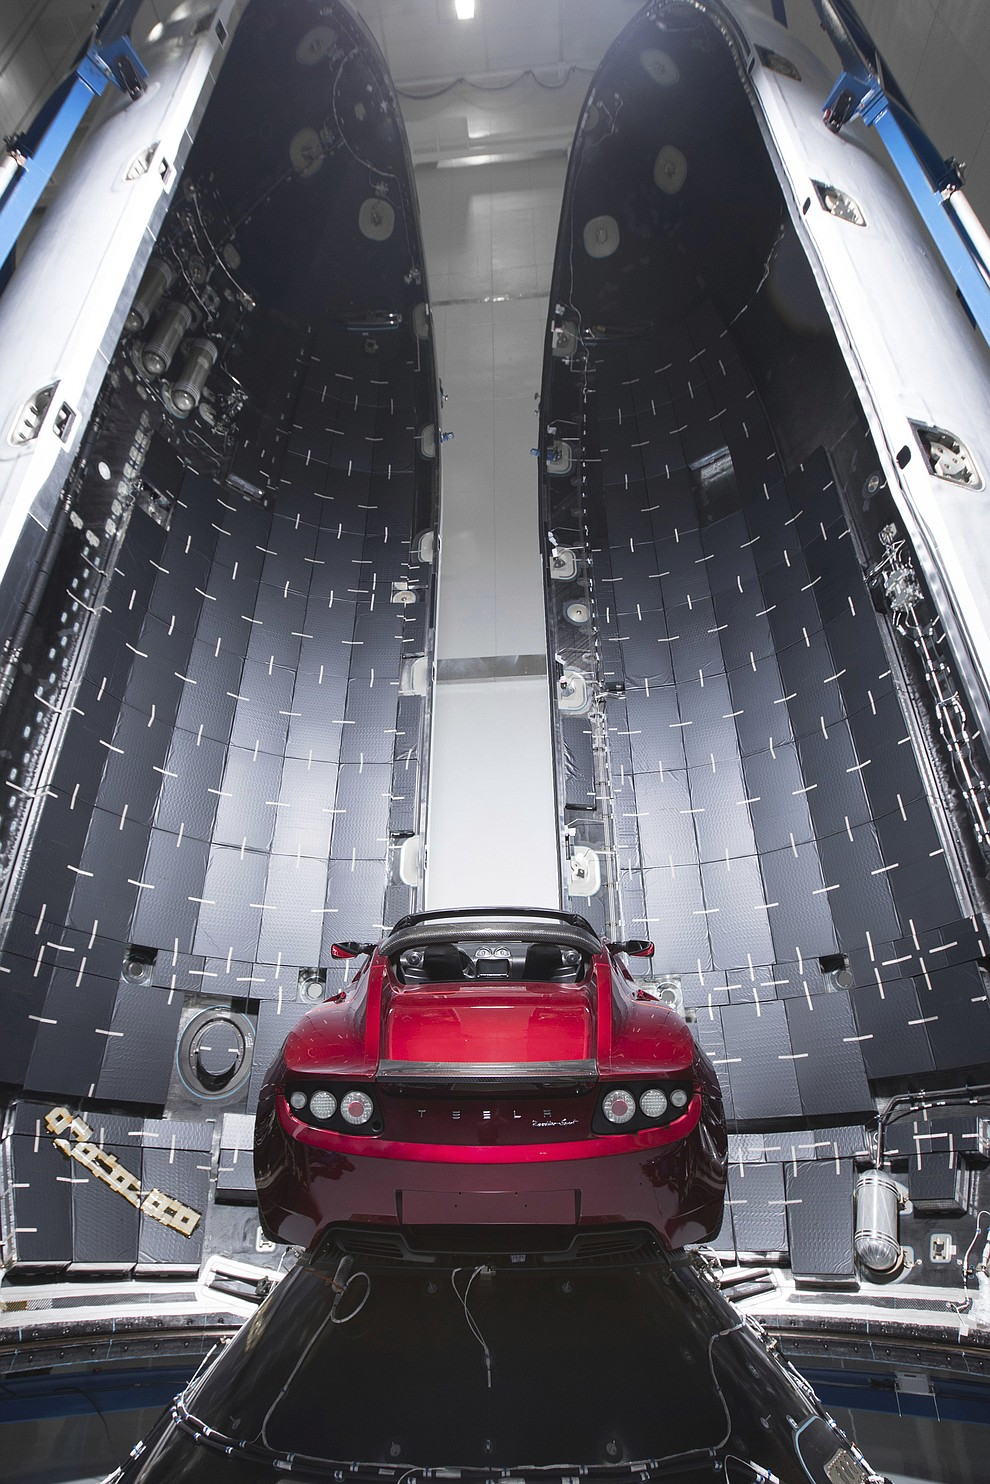 This Dec. 6, 2017 photo made available by SpaceX shows a Tesla car next to the fairing of a Falcon Heavy rocket in Cape Canaveral, Fla. For the Heavy's inaugural flight, the rocket will carry up Elon Musk's roadster. In addition to SpaceX, Musk runs the electric car maker Tesla. .(SpaceX via AP)